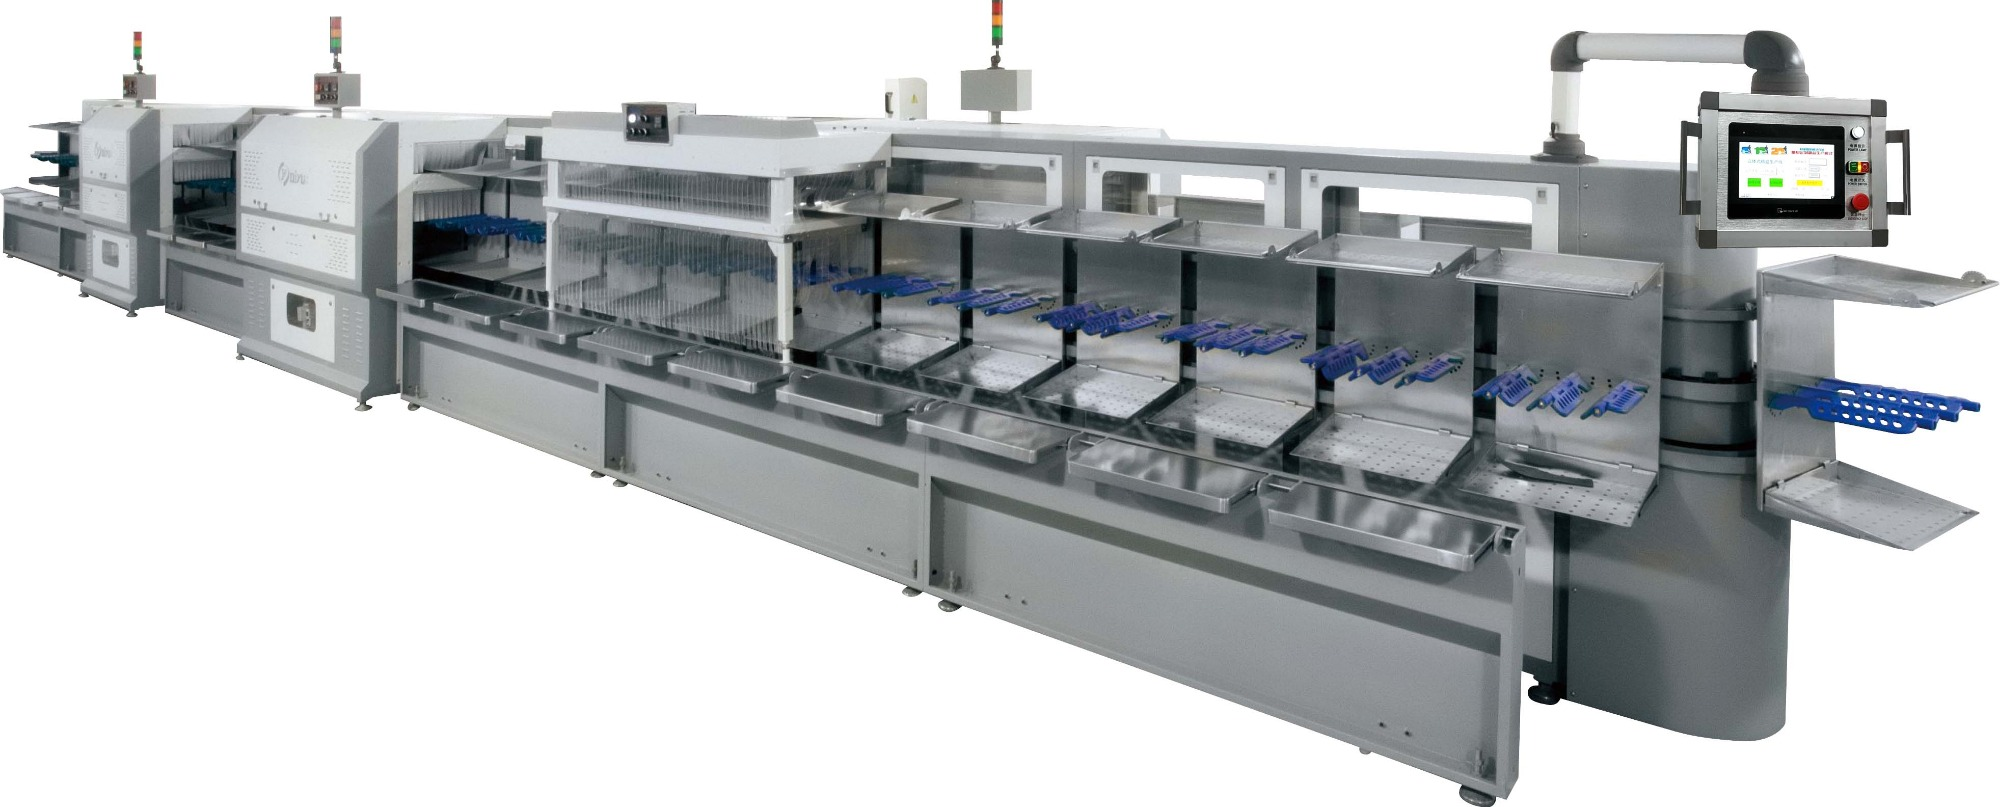 QY-533 Vertical lean production line (Standard type)